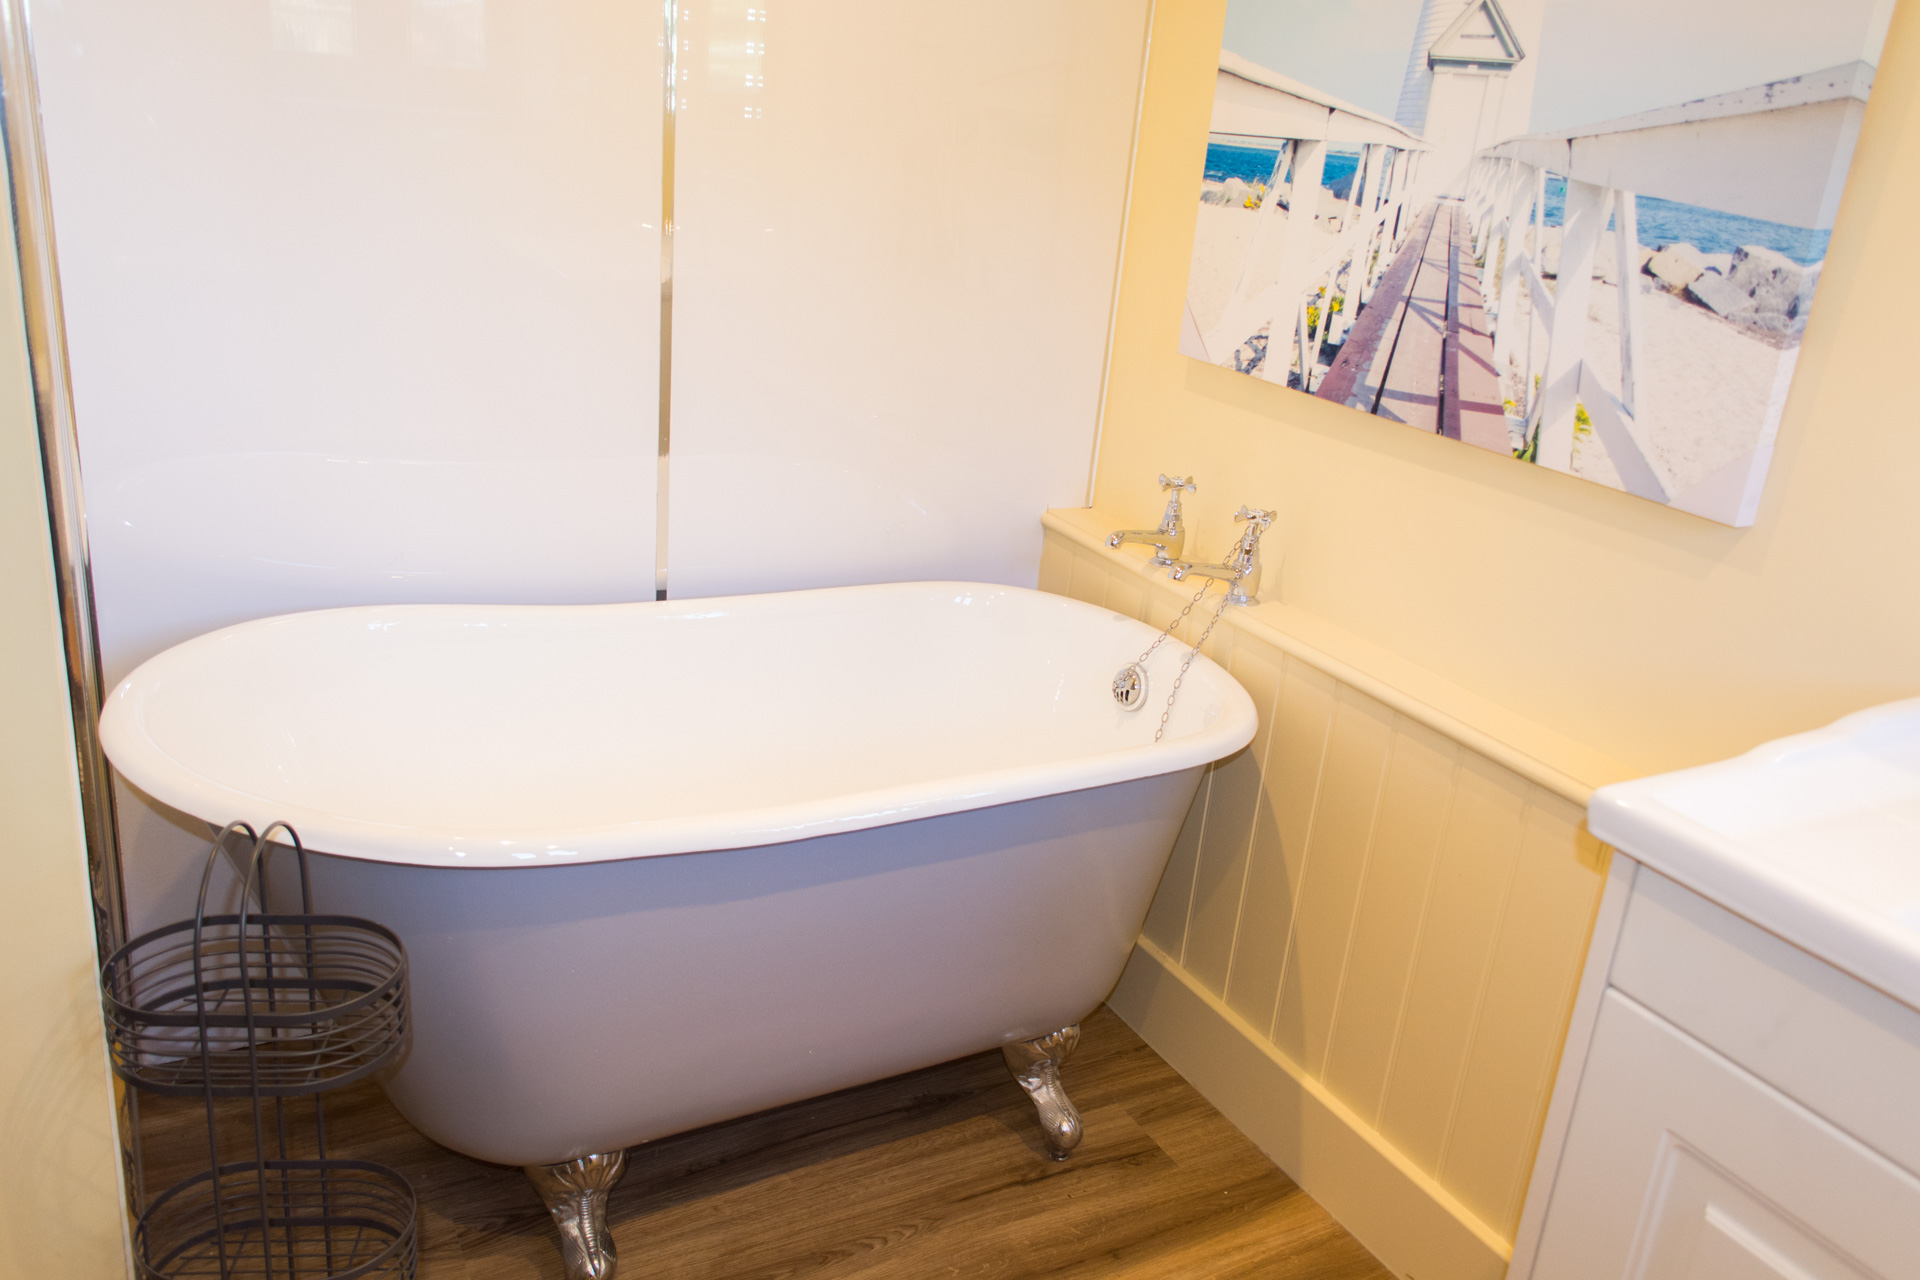 Bath tub in the downstairs bathroom of the holiday cottage.